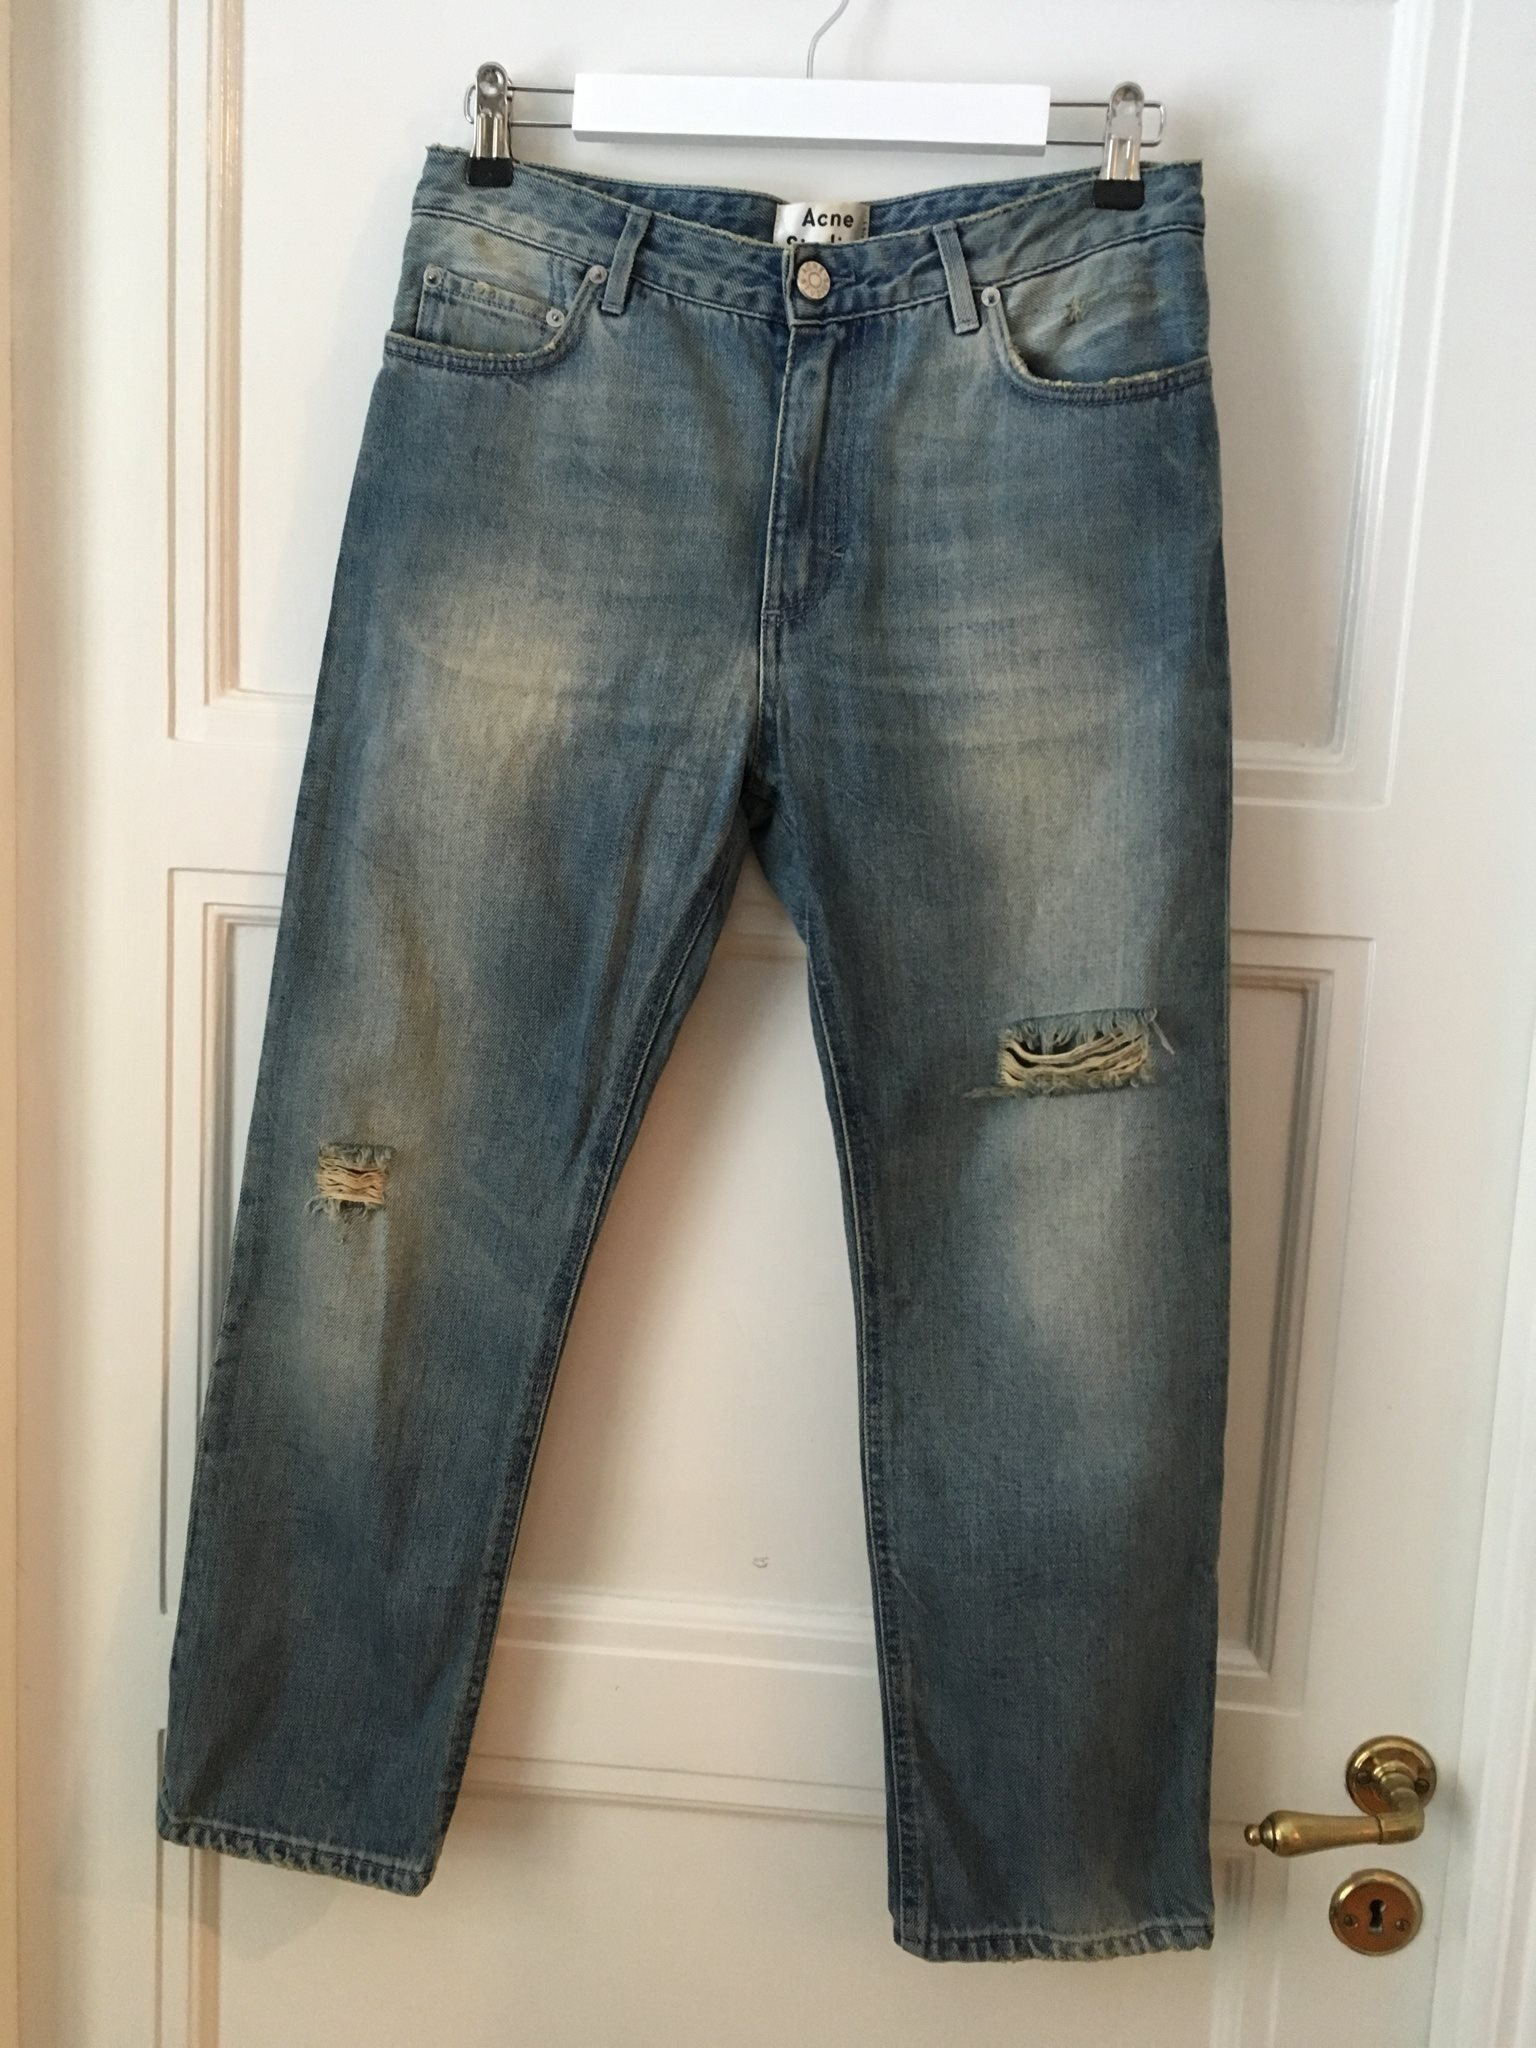 Acne Studios Jeans Pop Trash strl 34